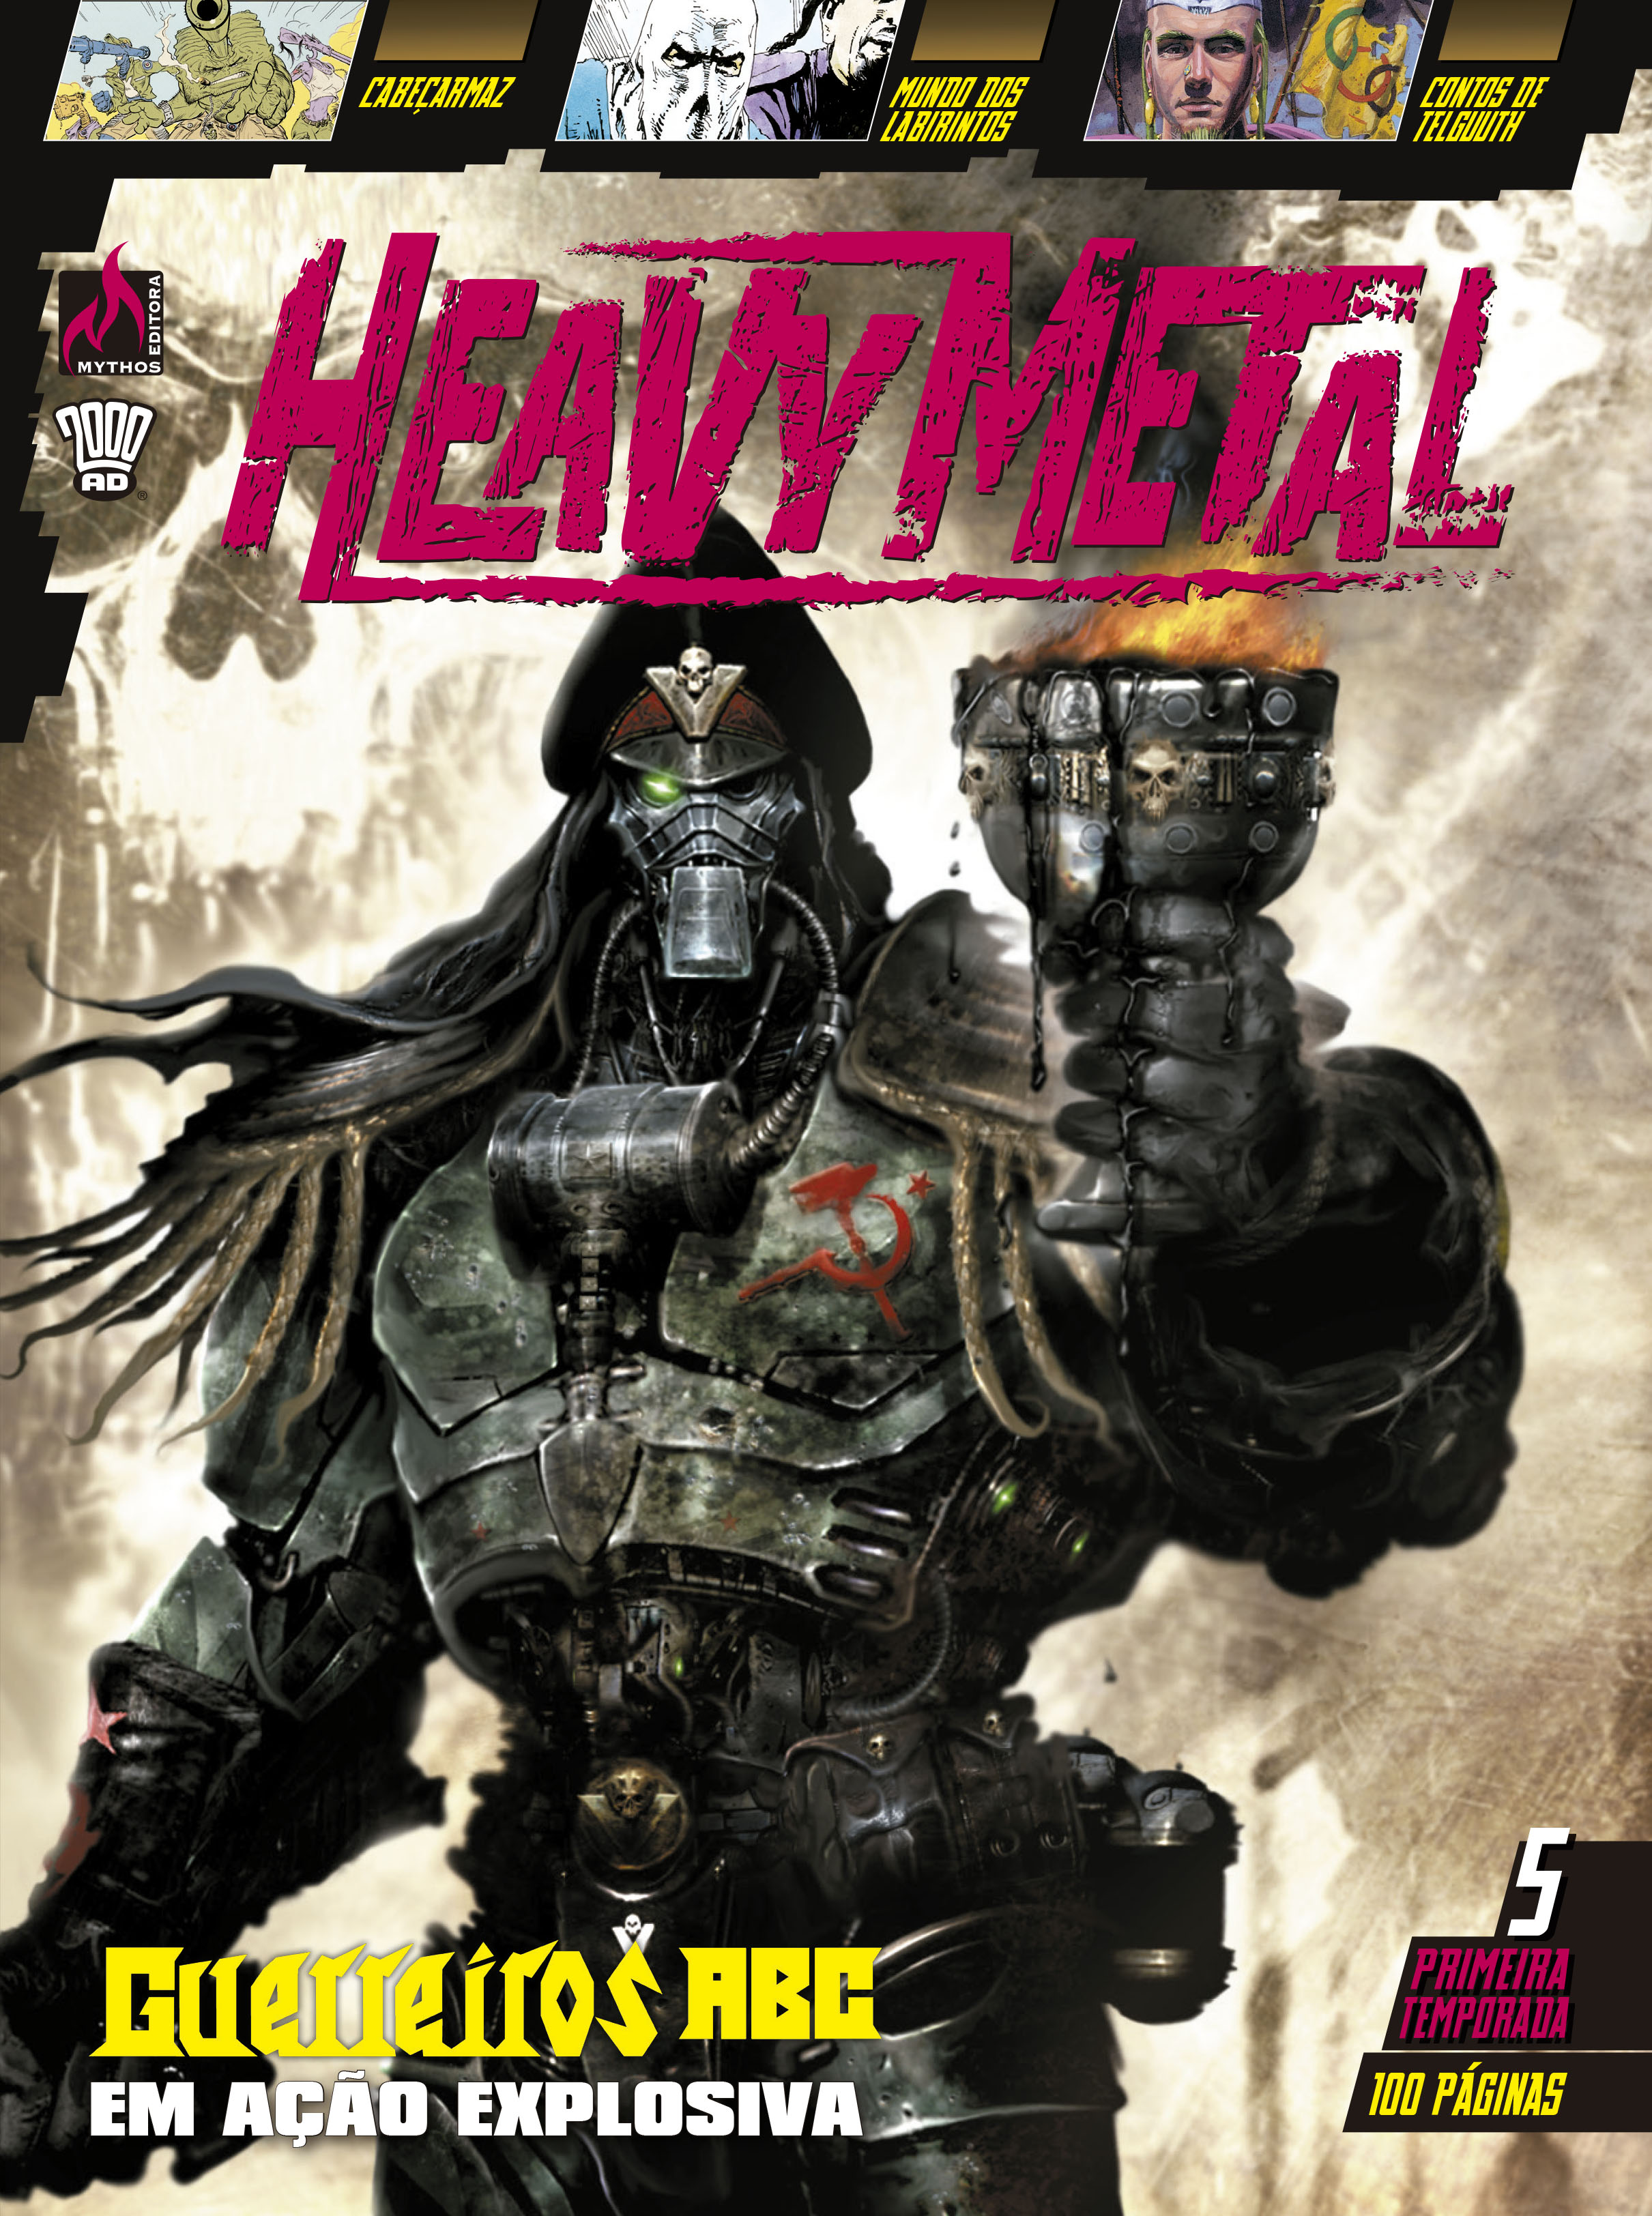 HEAVY METAL 1º TEMPORADA - EPISÓDIO 5